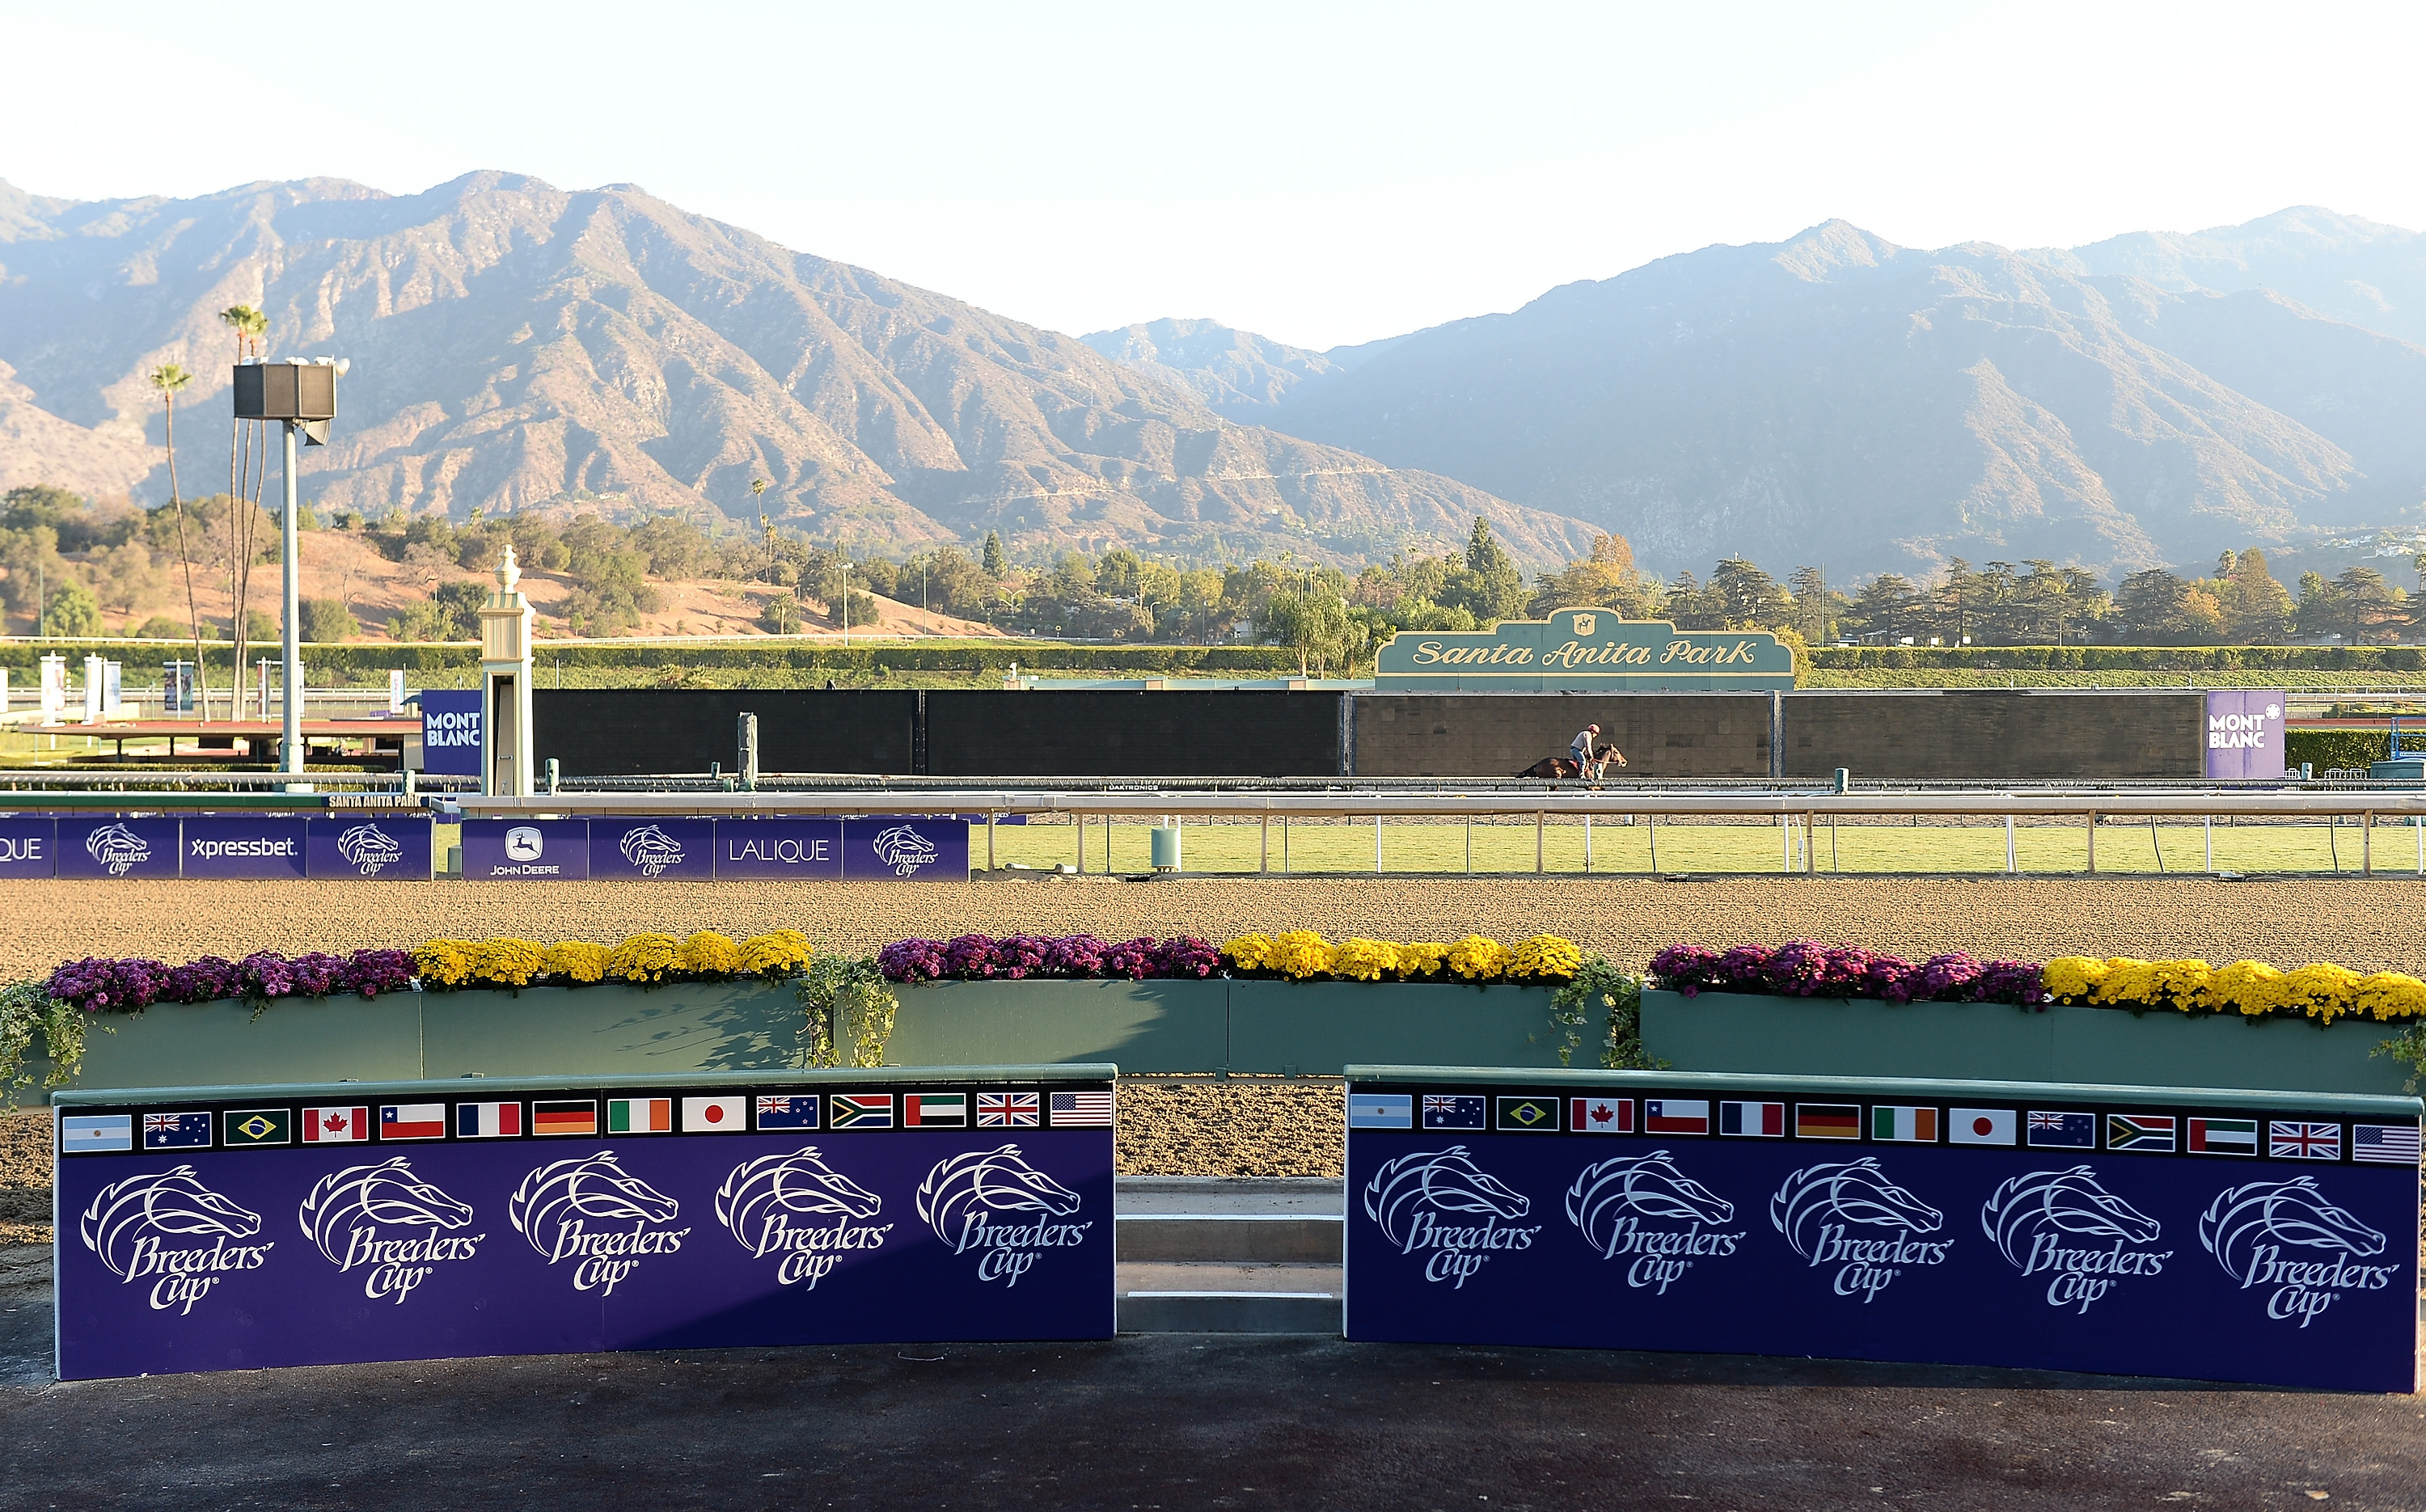 Santa Anita Sees 3rd Death In 9 Days 26th In 6 Months